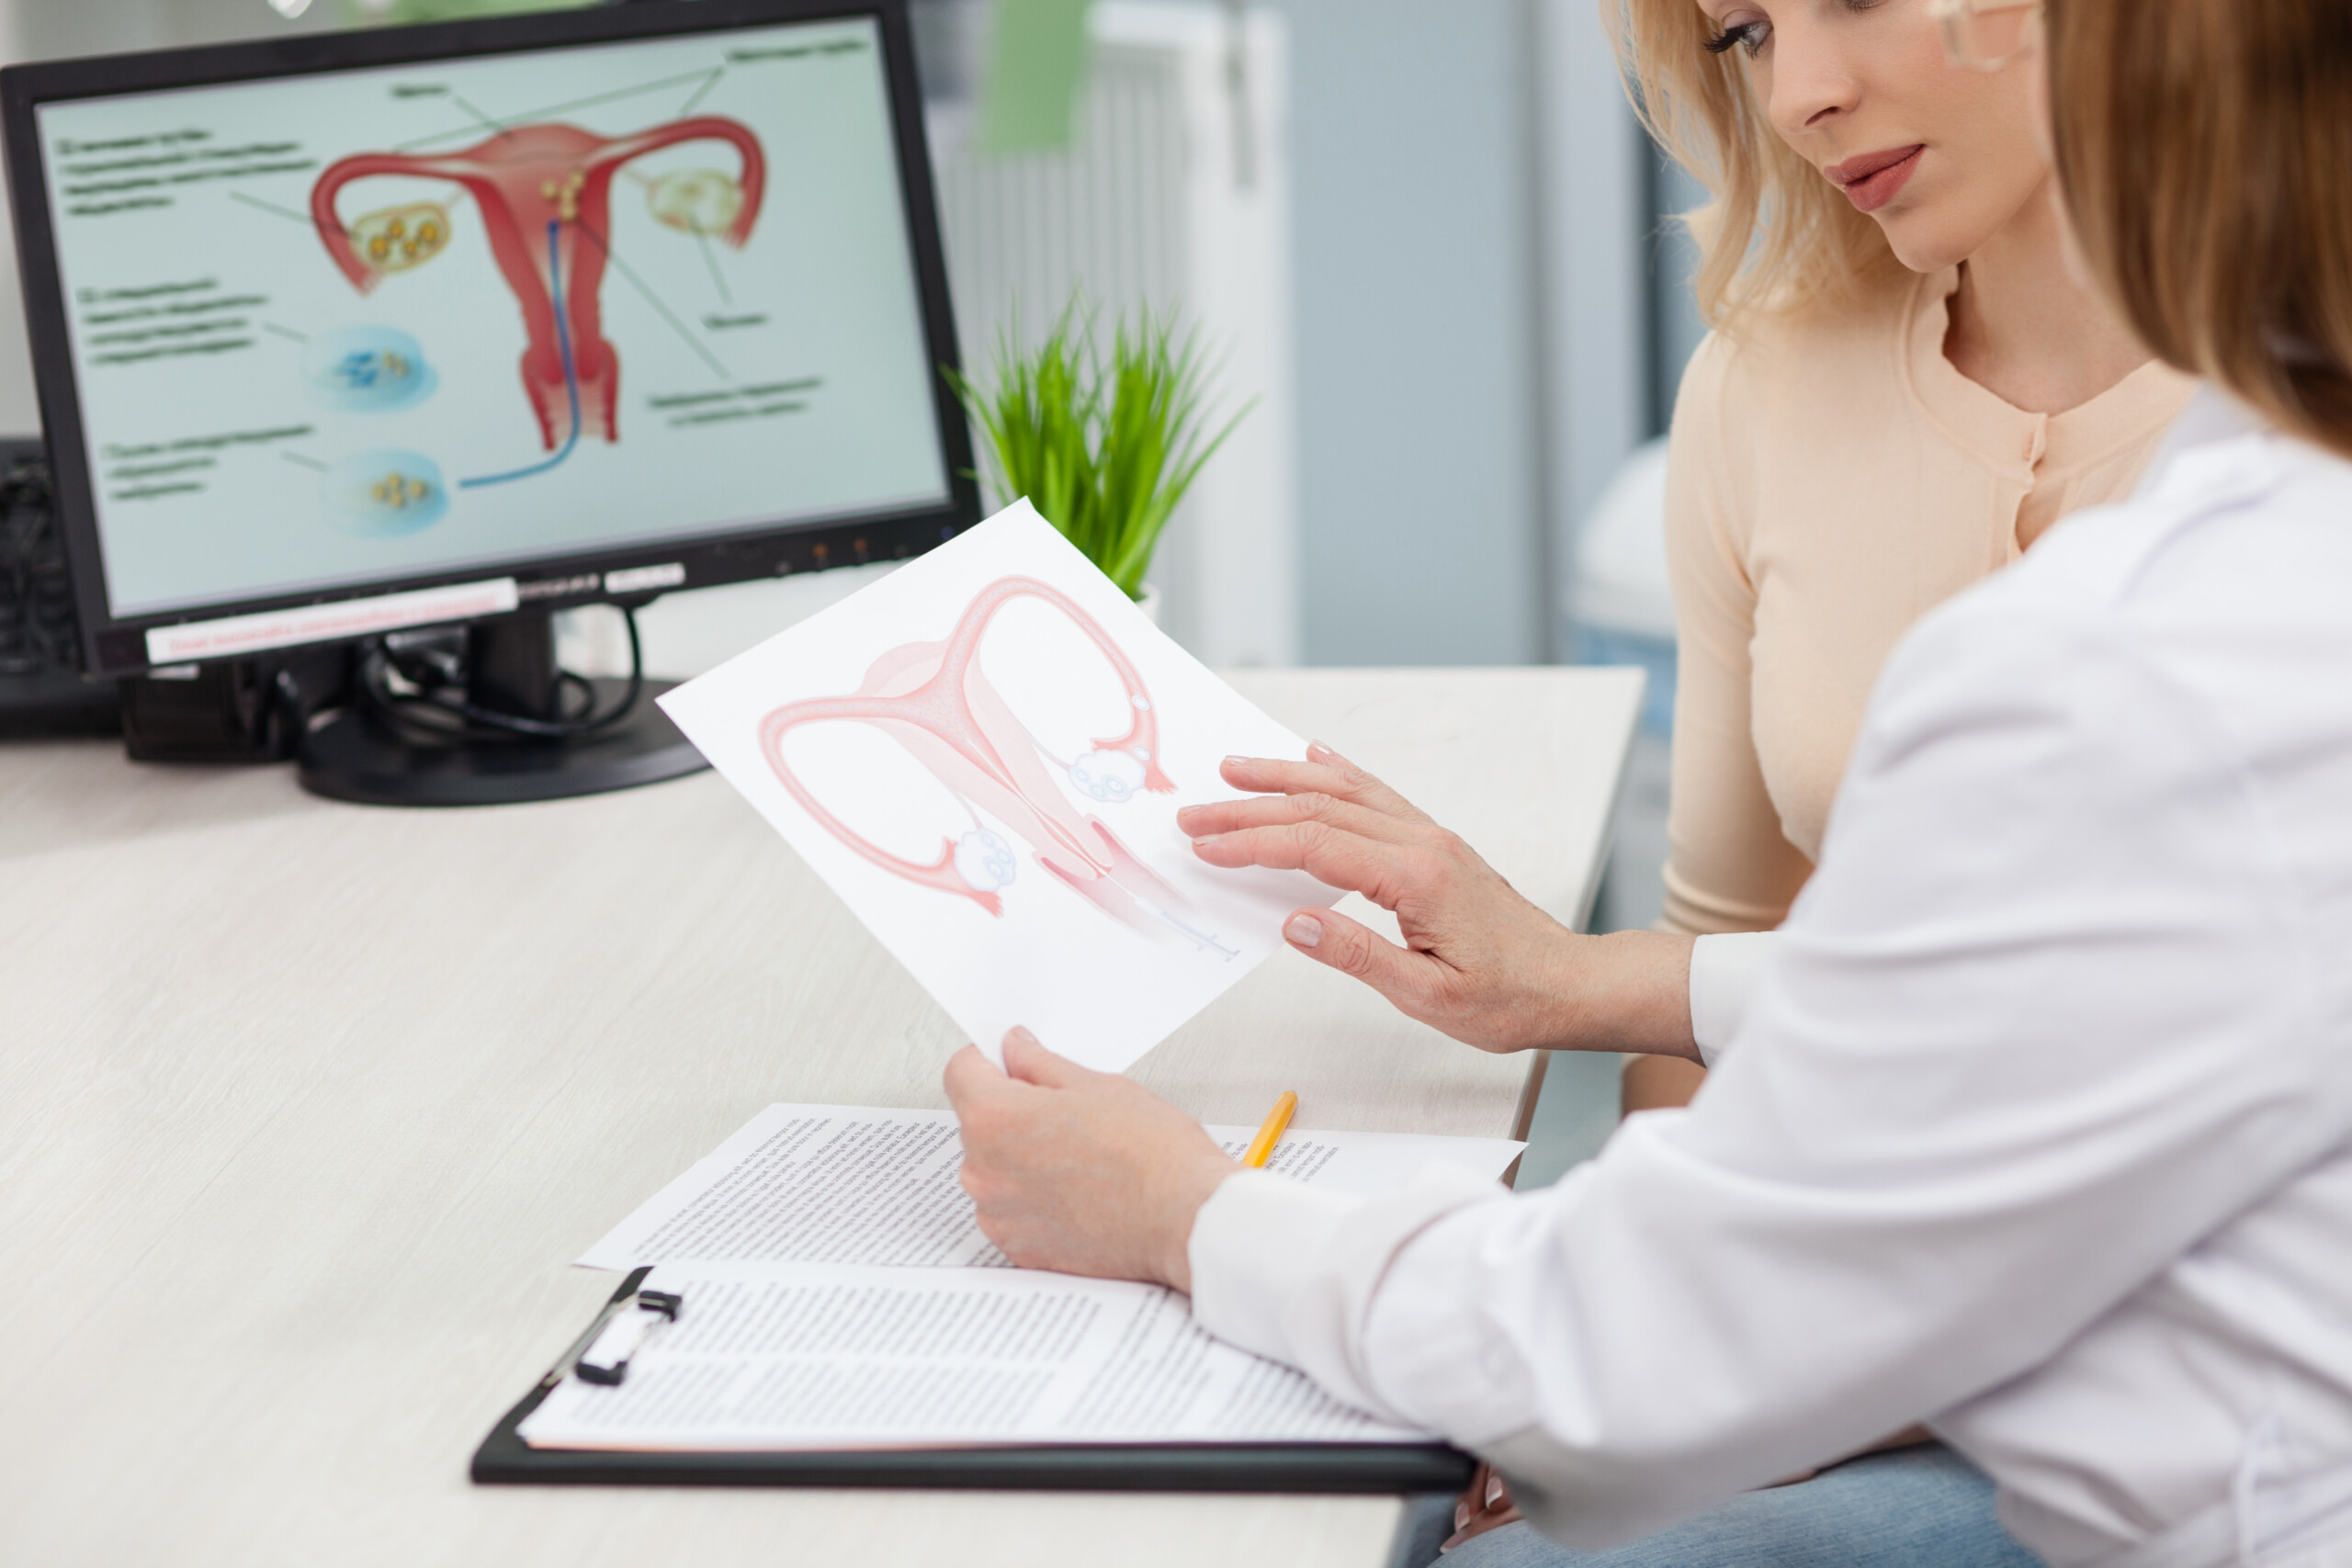 How Does Ovarian Cancer Cause Vaginal Bleeding?